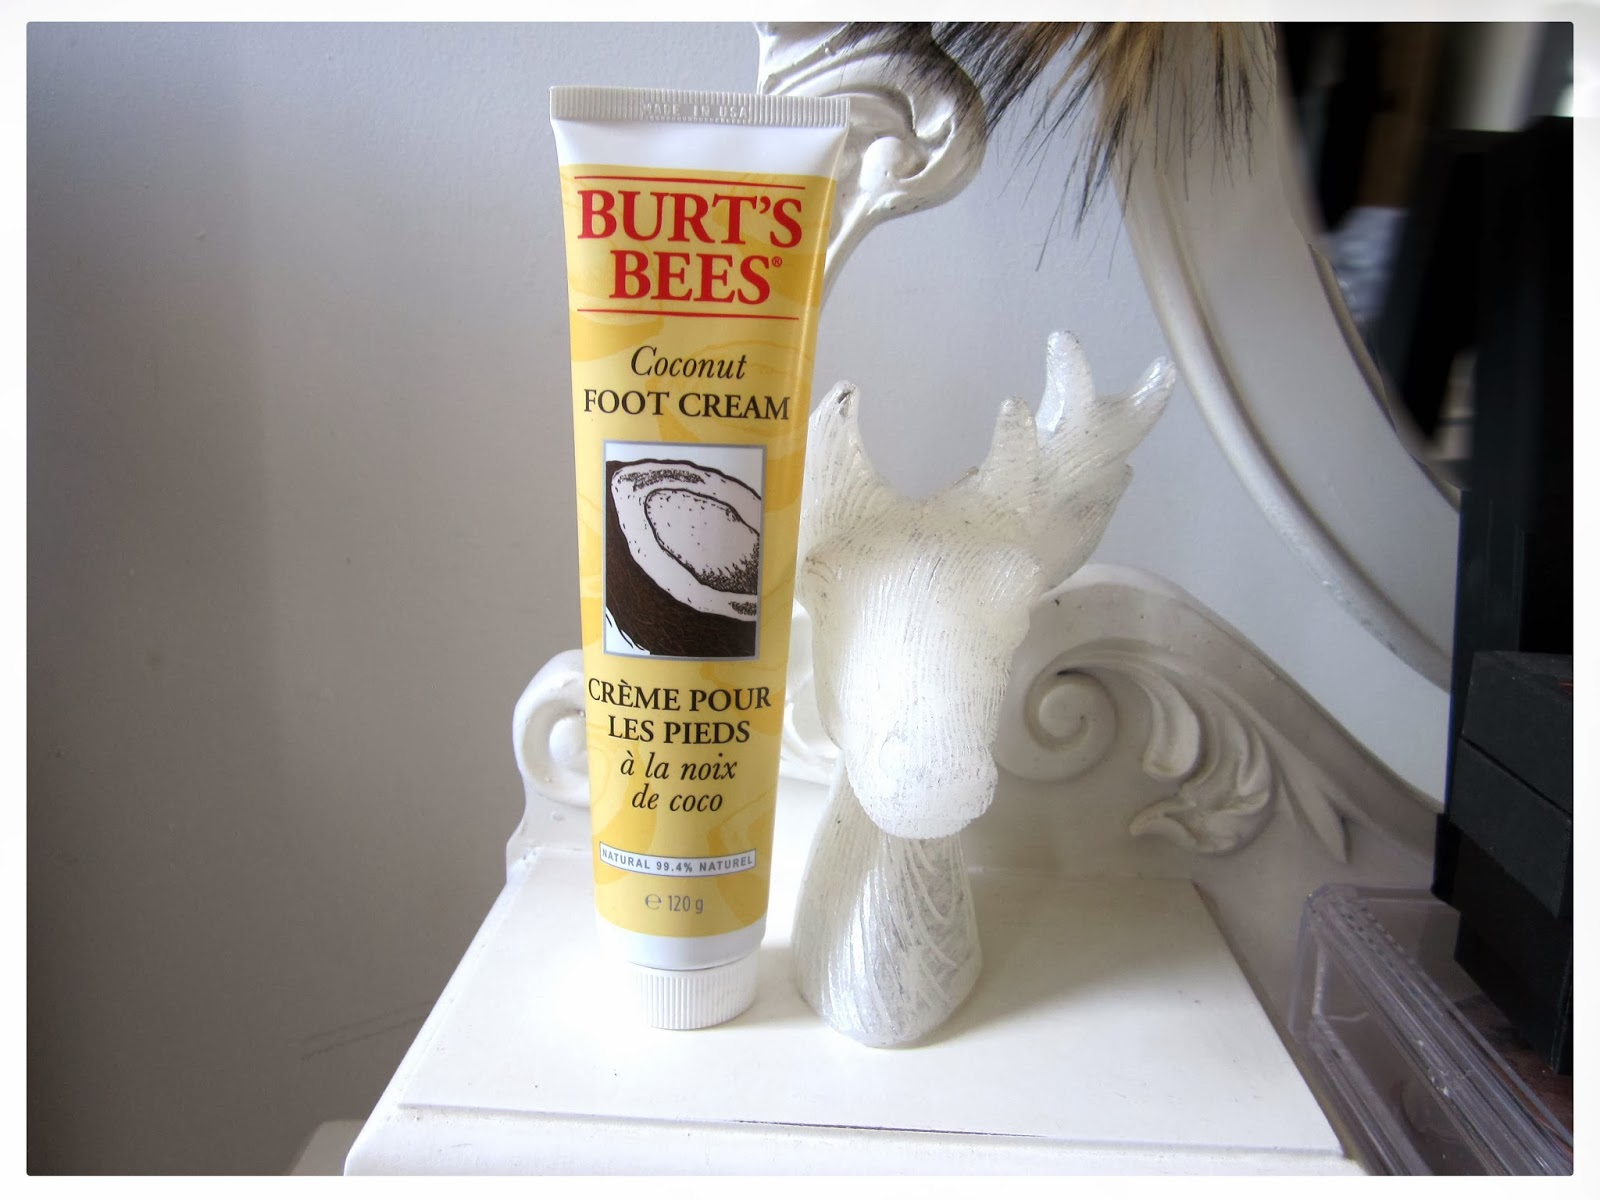 Burt's Bees Coconut Foot Cream Review